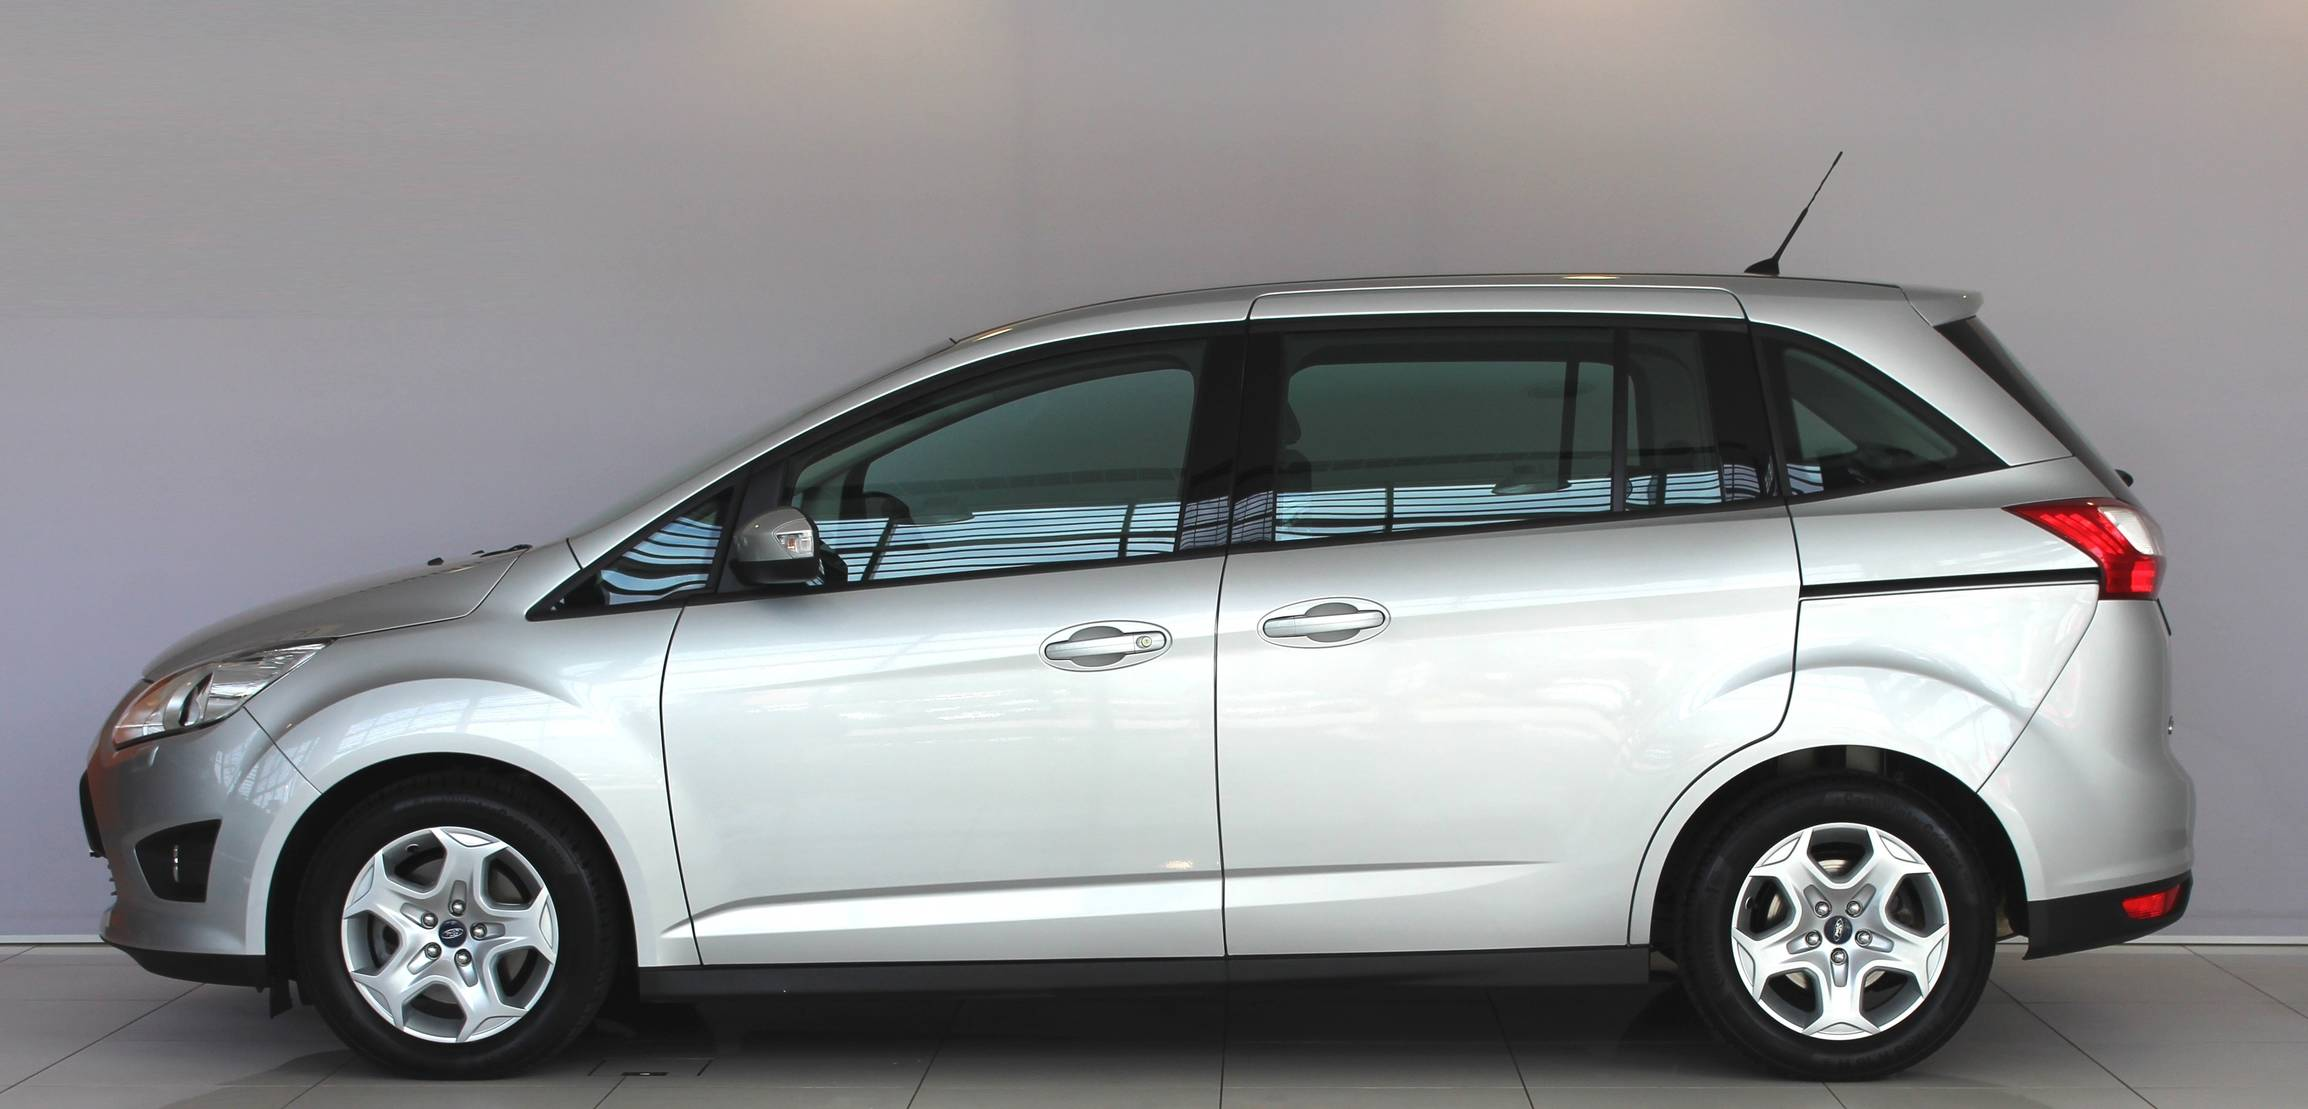 Ford Grand C-Max 2.0 TDCi, Trend detail2